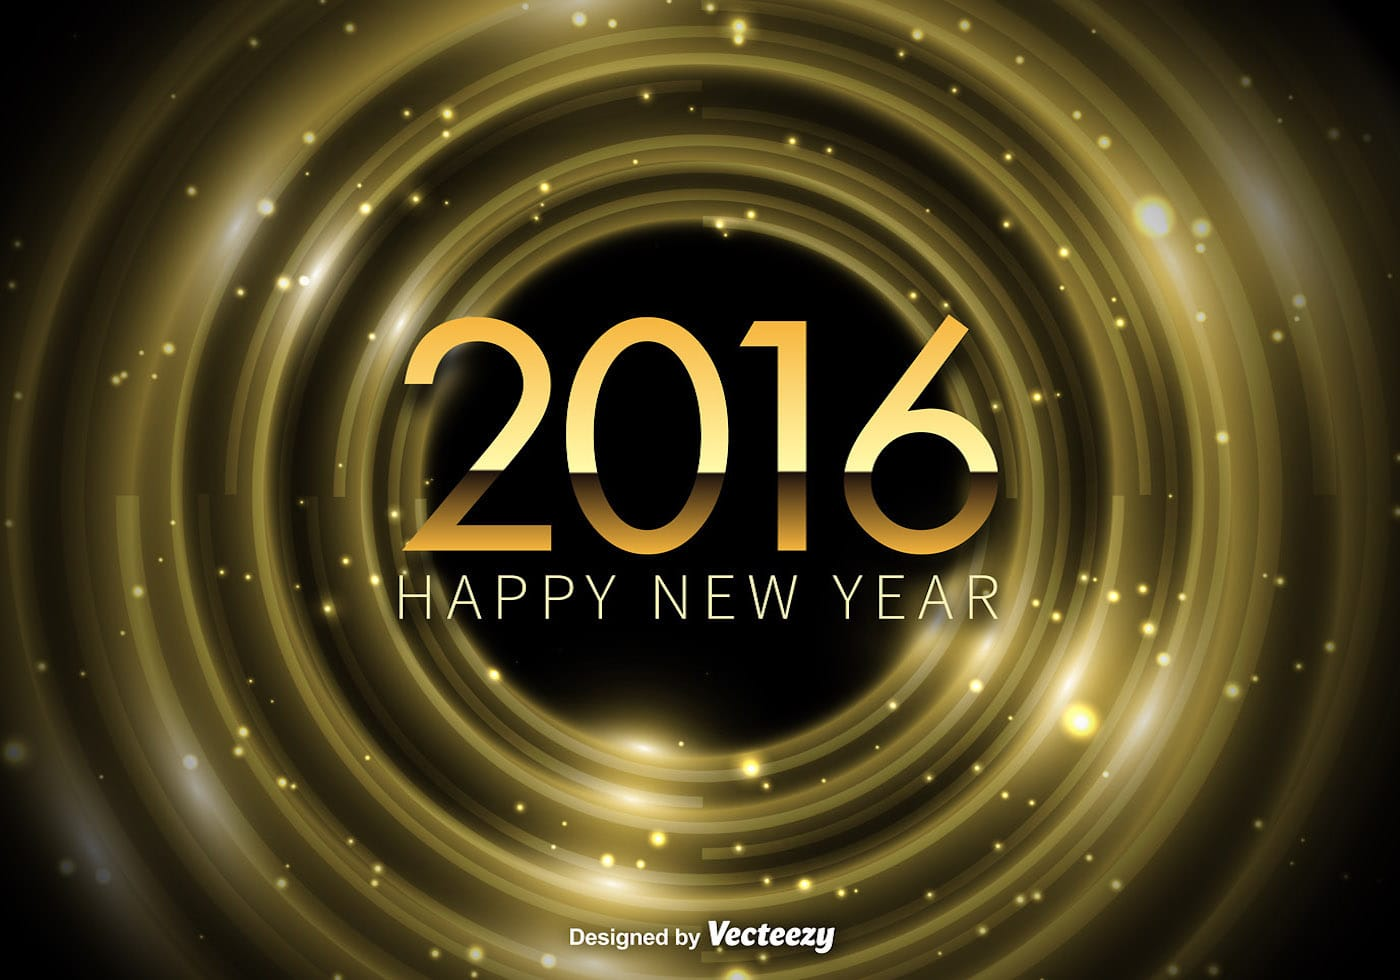 Happy New Year 2016 background 100586 - Download Free ...